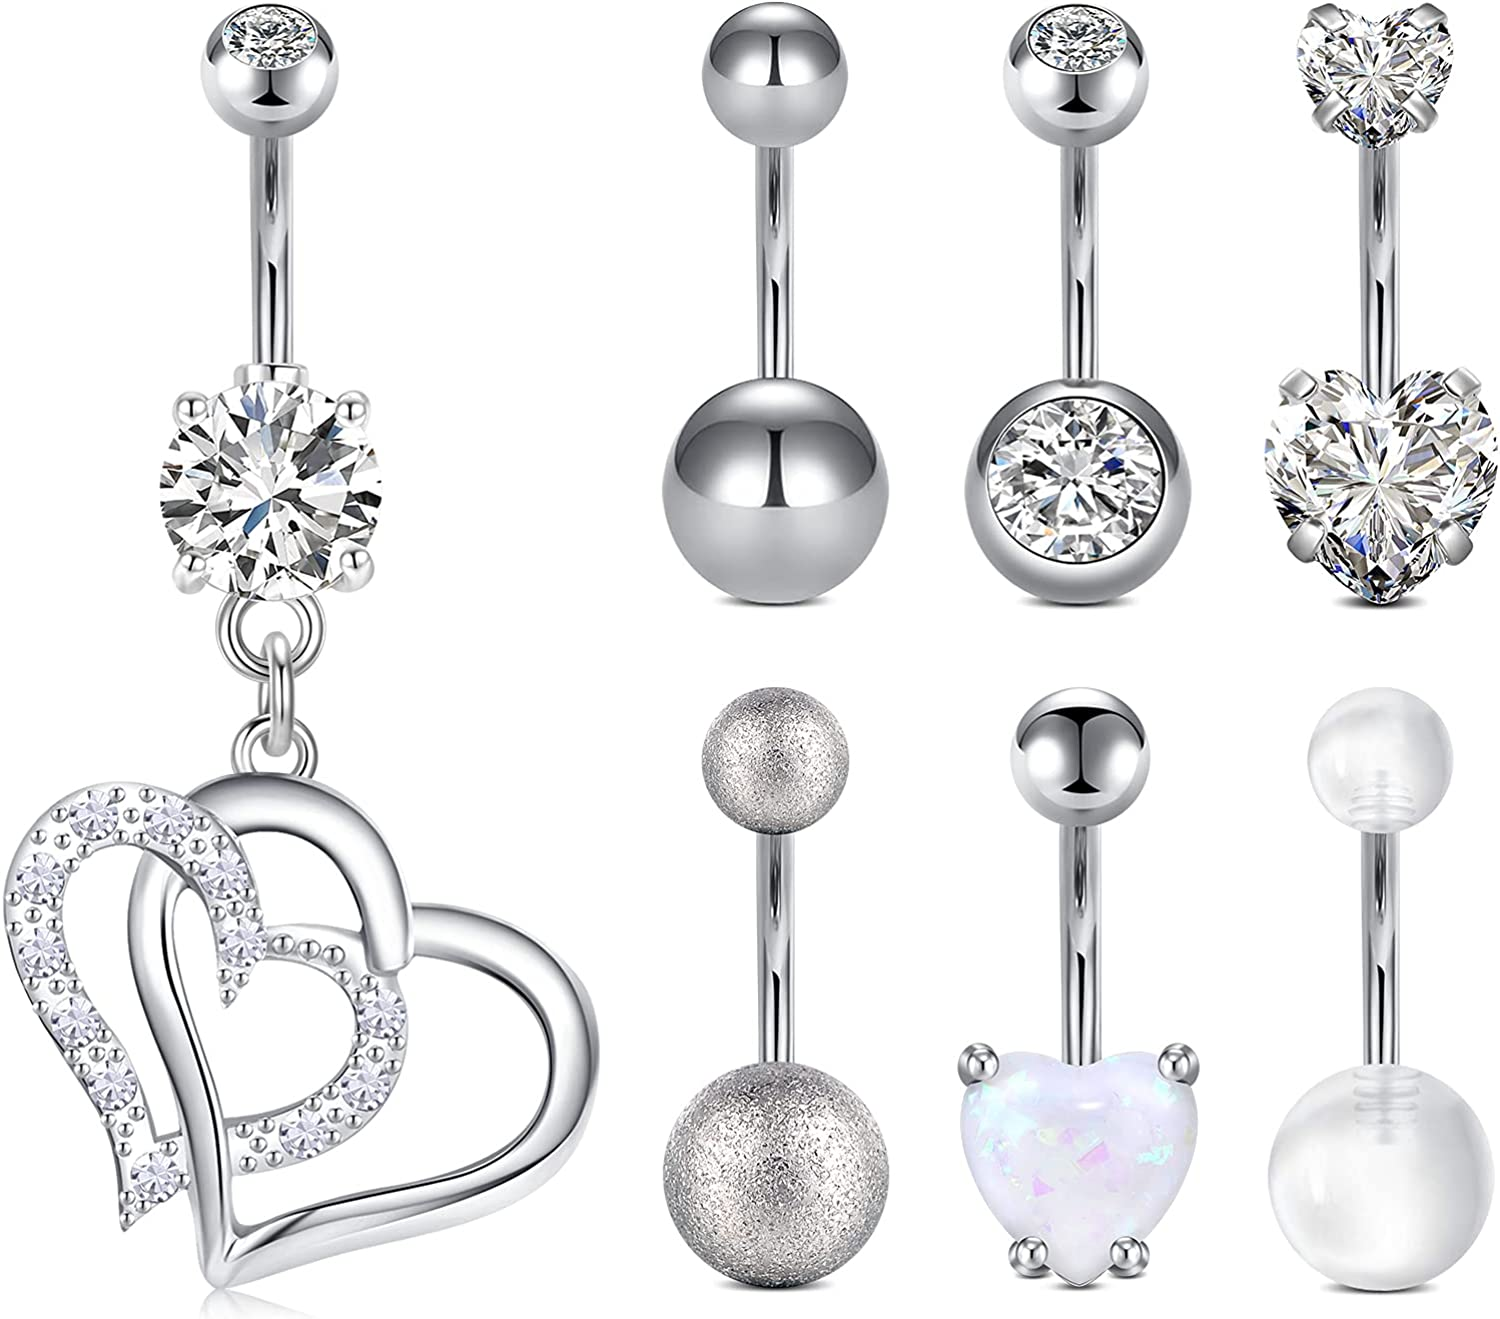 NIUSIMAN 14G Belly Button Rings for Women Dangle Heart Shaped Belly Bar Stainless Steel Curved Barbell Navel Ring Body Jewelry Piercing 7 Pcs